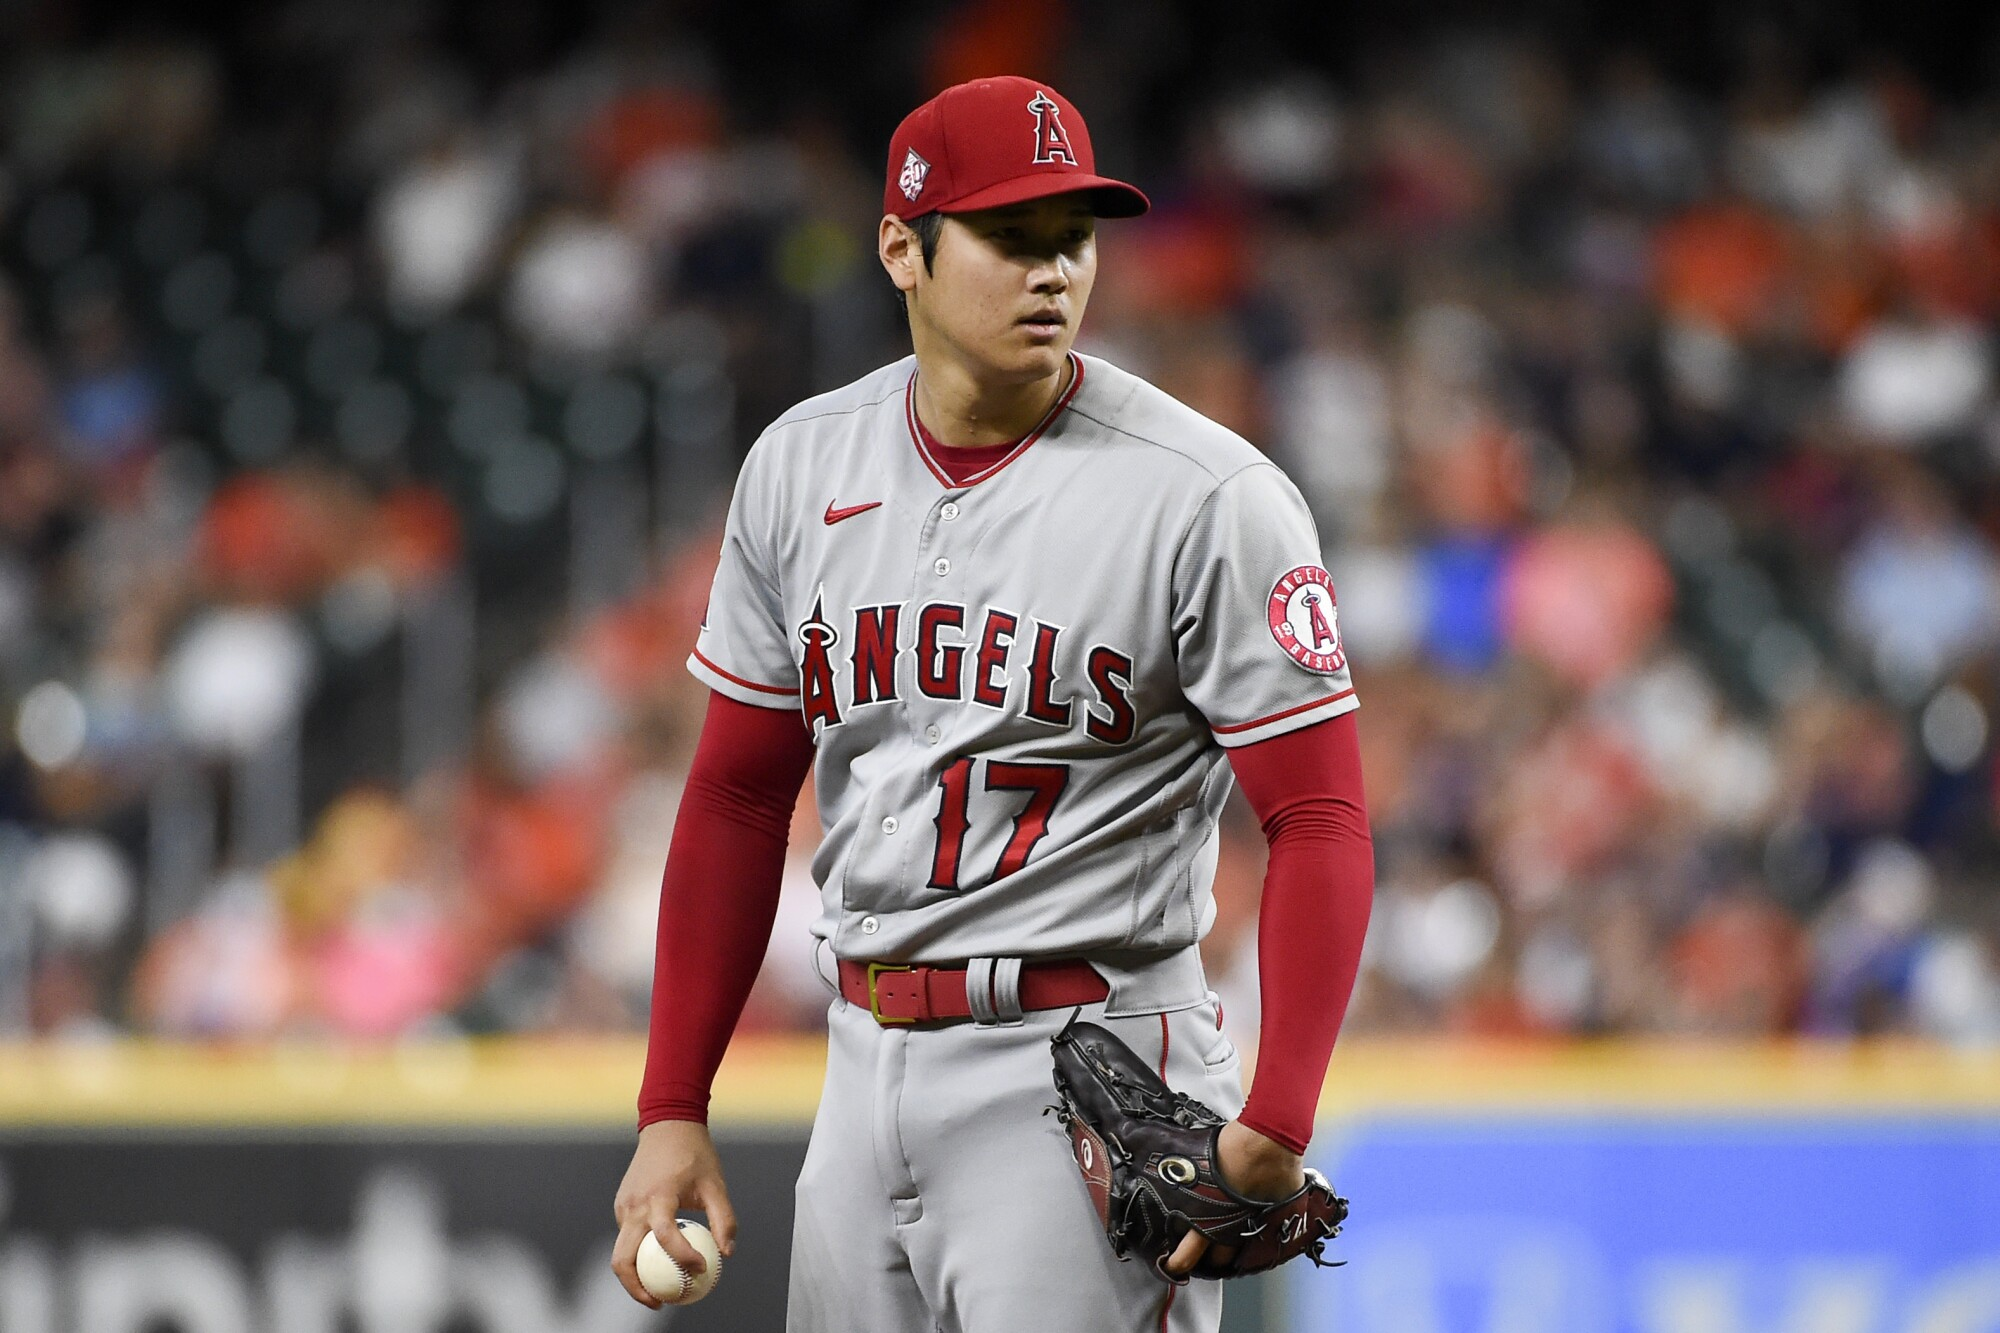 Shohei Ohtani will not pitch on Friday as expected after experiencing arm soreness. (AP Photo/Eric Christian Smith)